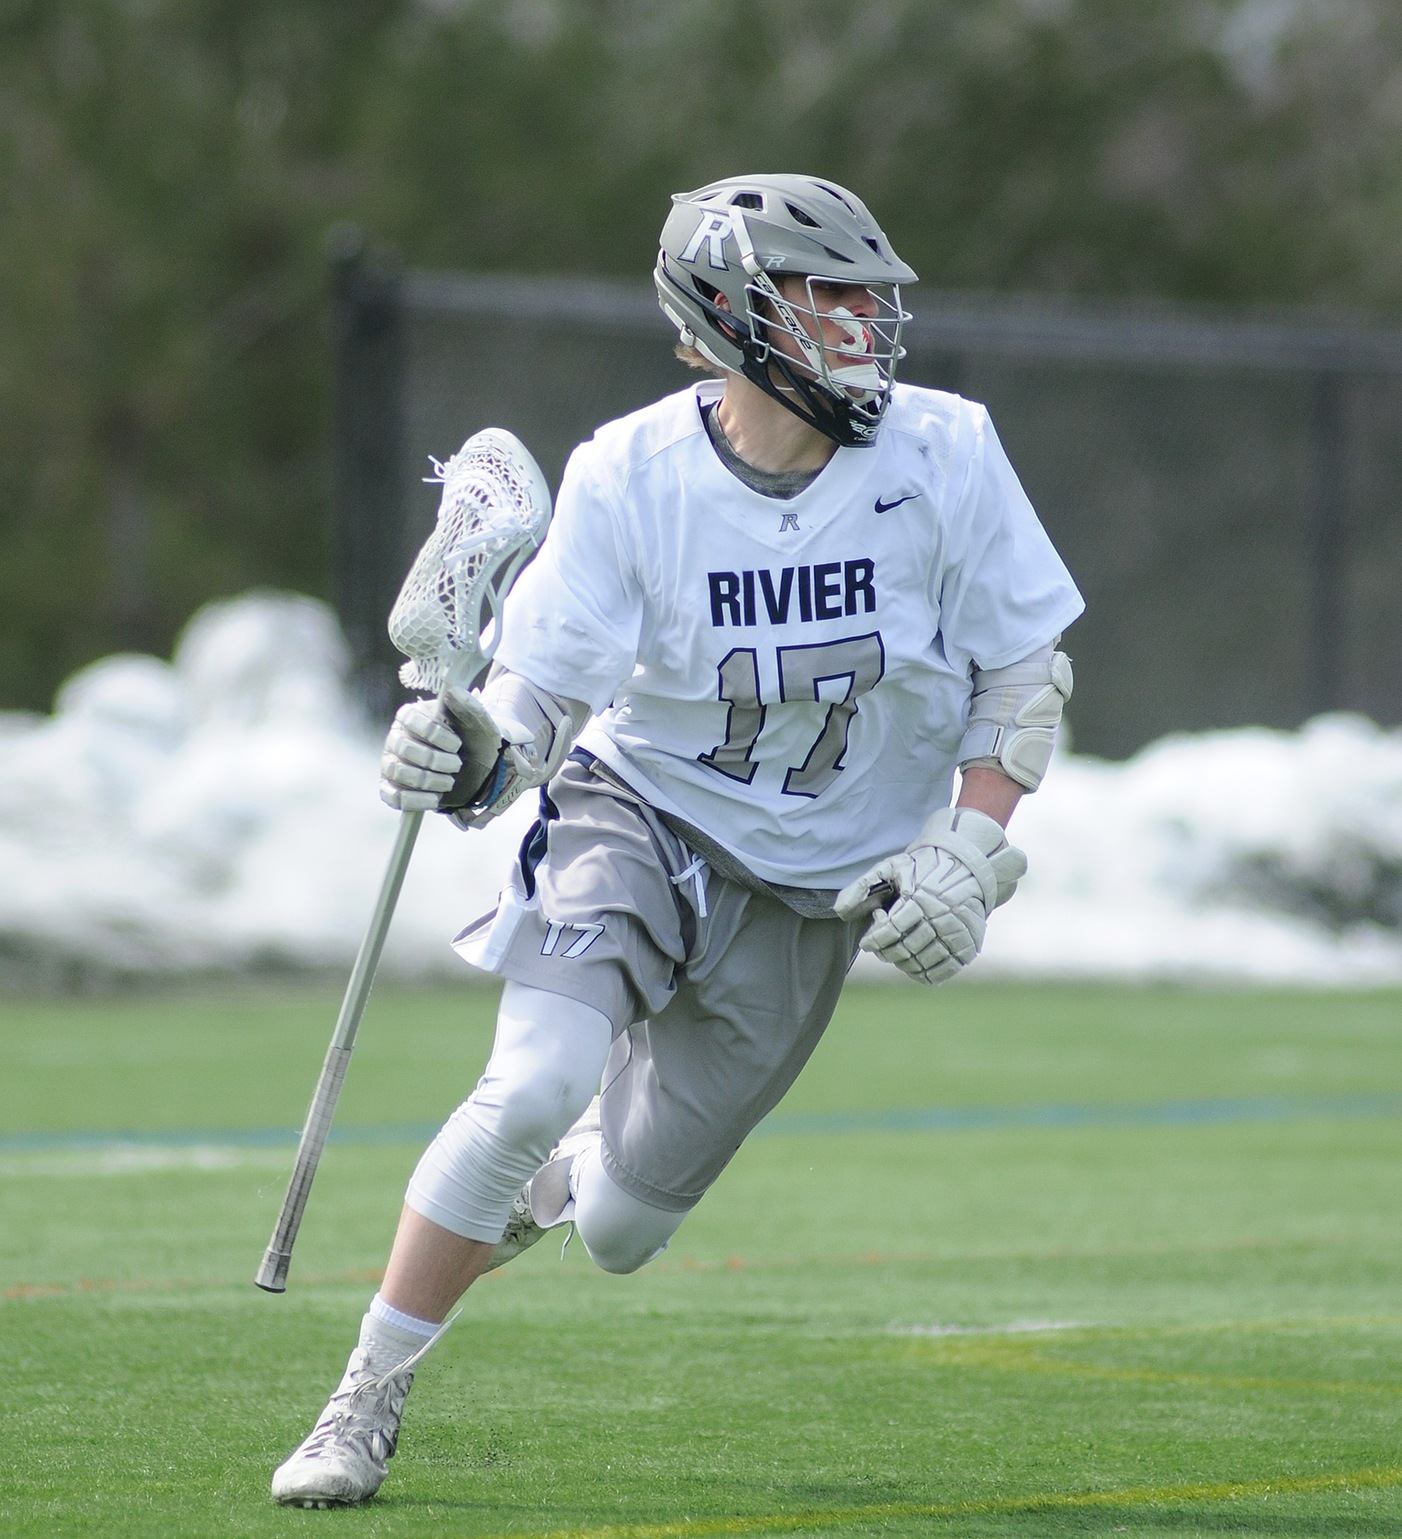 Men's Lacrosse: Raiders suffer first loss of the season to Monks, 13-7.